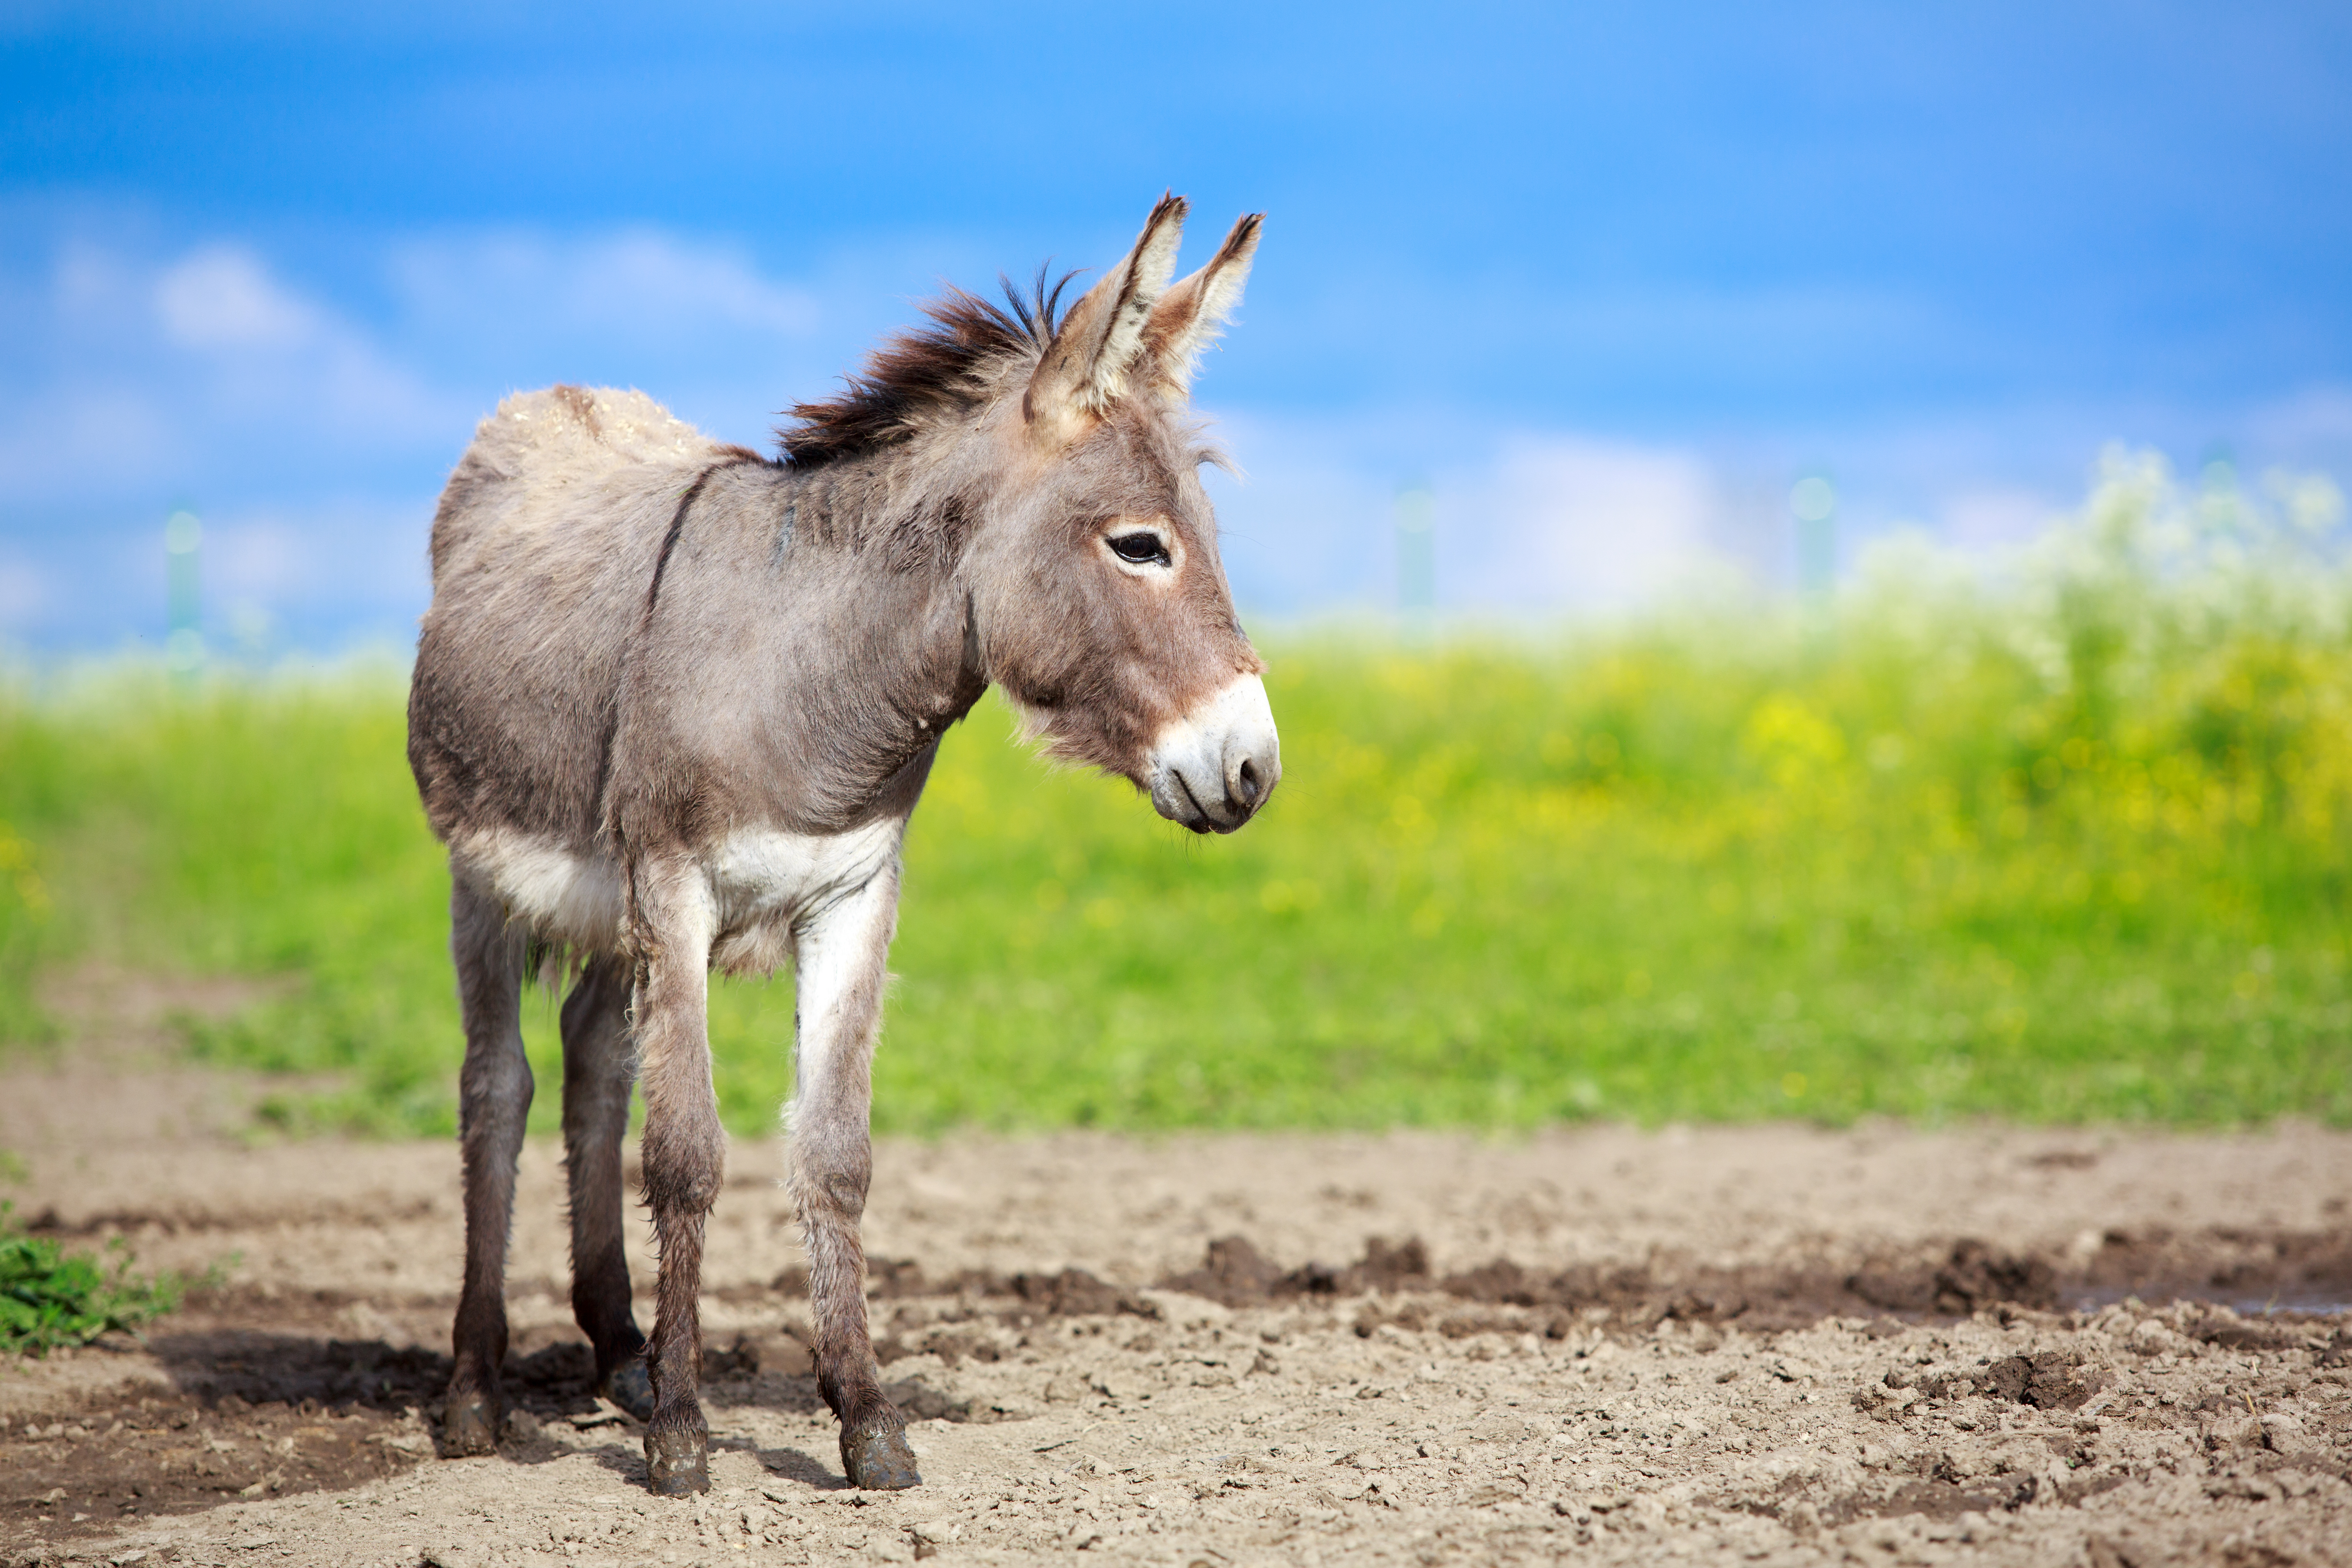 Picture of a donkey in a field. Copywriter Fiona Thompson writes fundraising materials for charities including the Brooke, the animal welfare charity